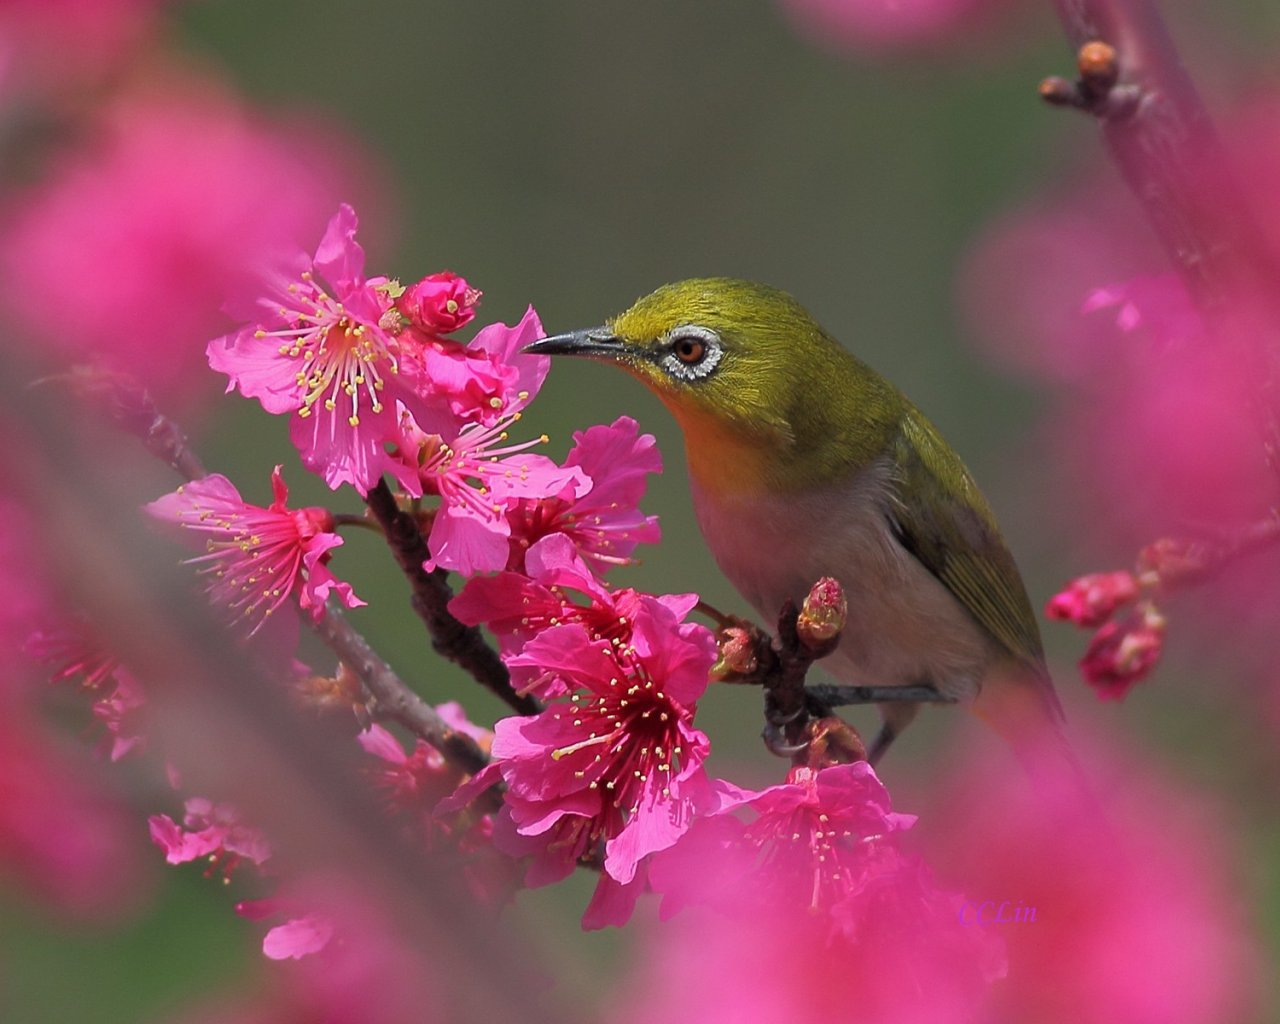 flowers and birds wallpaper which is under the birds wallpapers 1280x1024